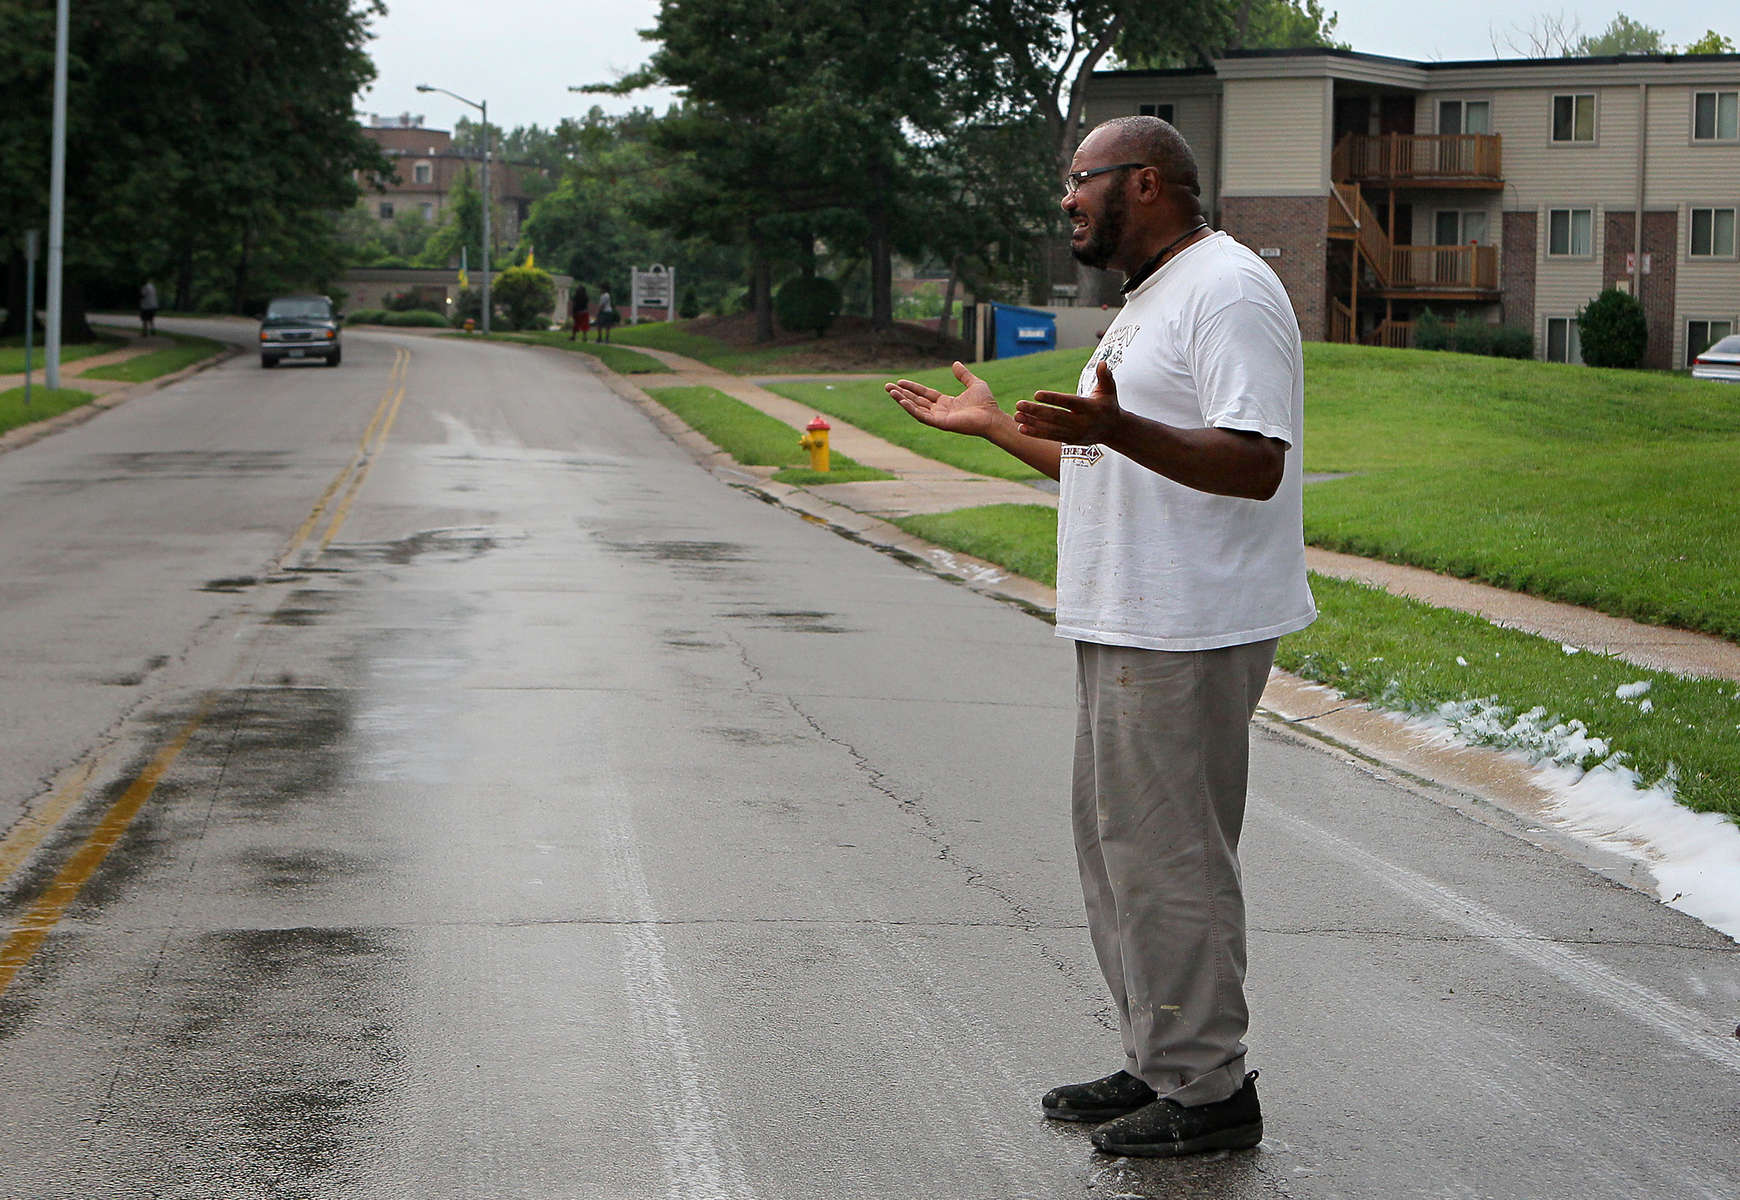 The pavement still wet from being hosed down to wash blood off the road, Pastor Charles Ewing grieves and prays near the spot his nephew Michael Brown Jr. was shot and killed by Ferguson police officer Darren Wilson in Ferguson, Mo. on Saturday, Aug. 9, 2014.  Ewing was the first person to stand on the spot after the crime scene tape came down and police left the area.